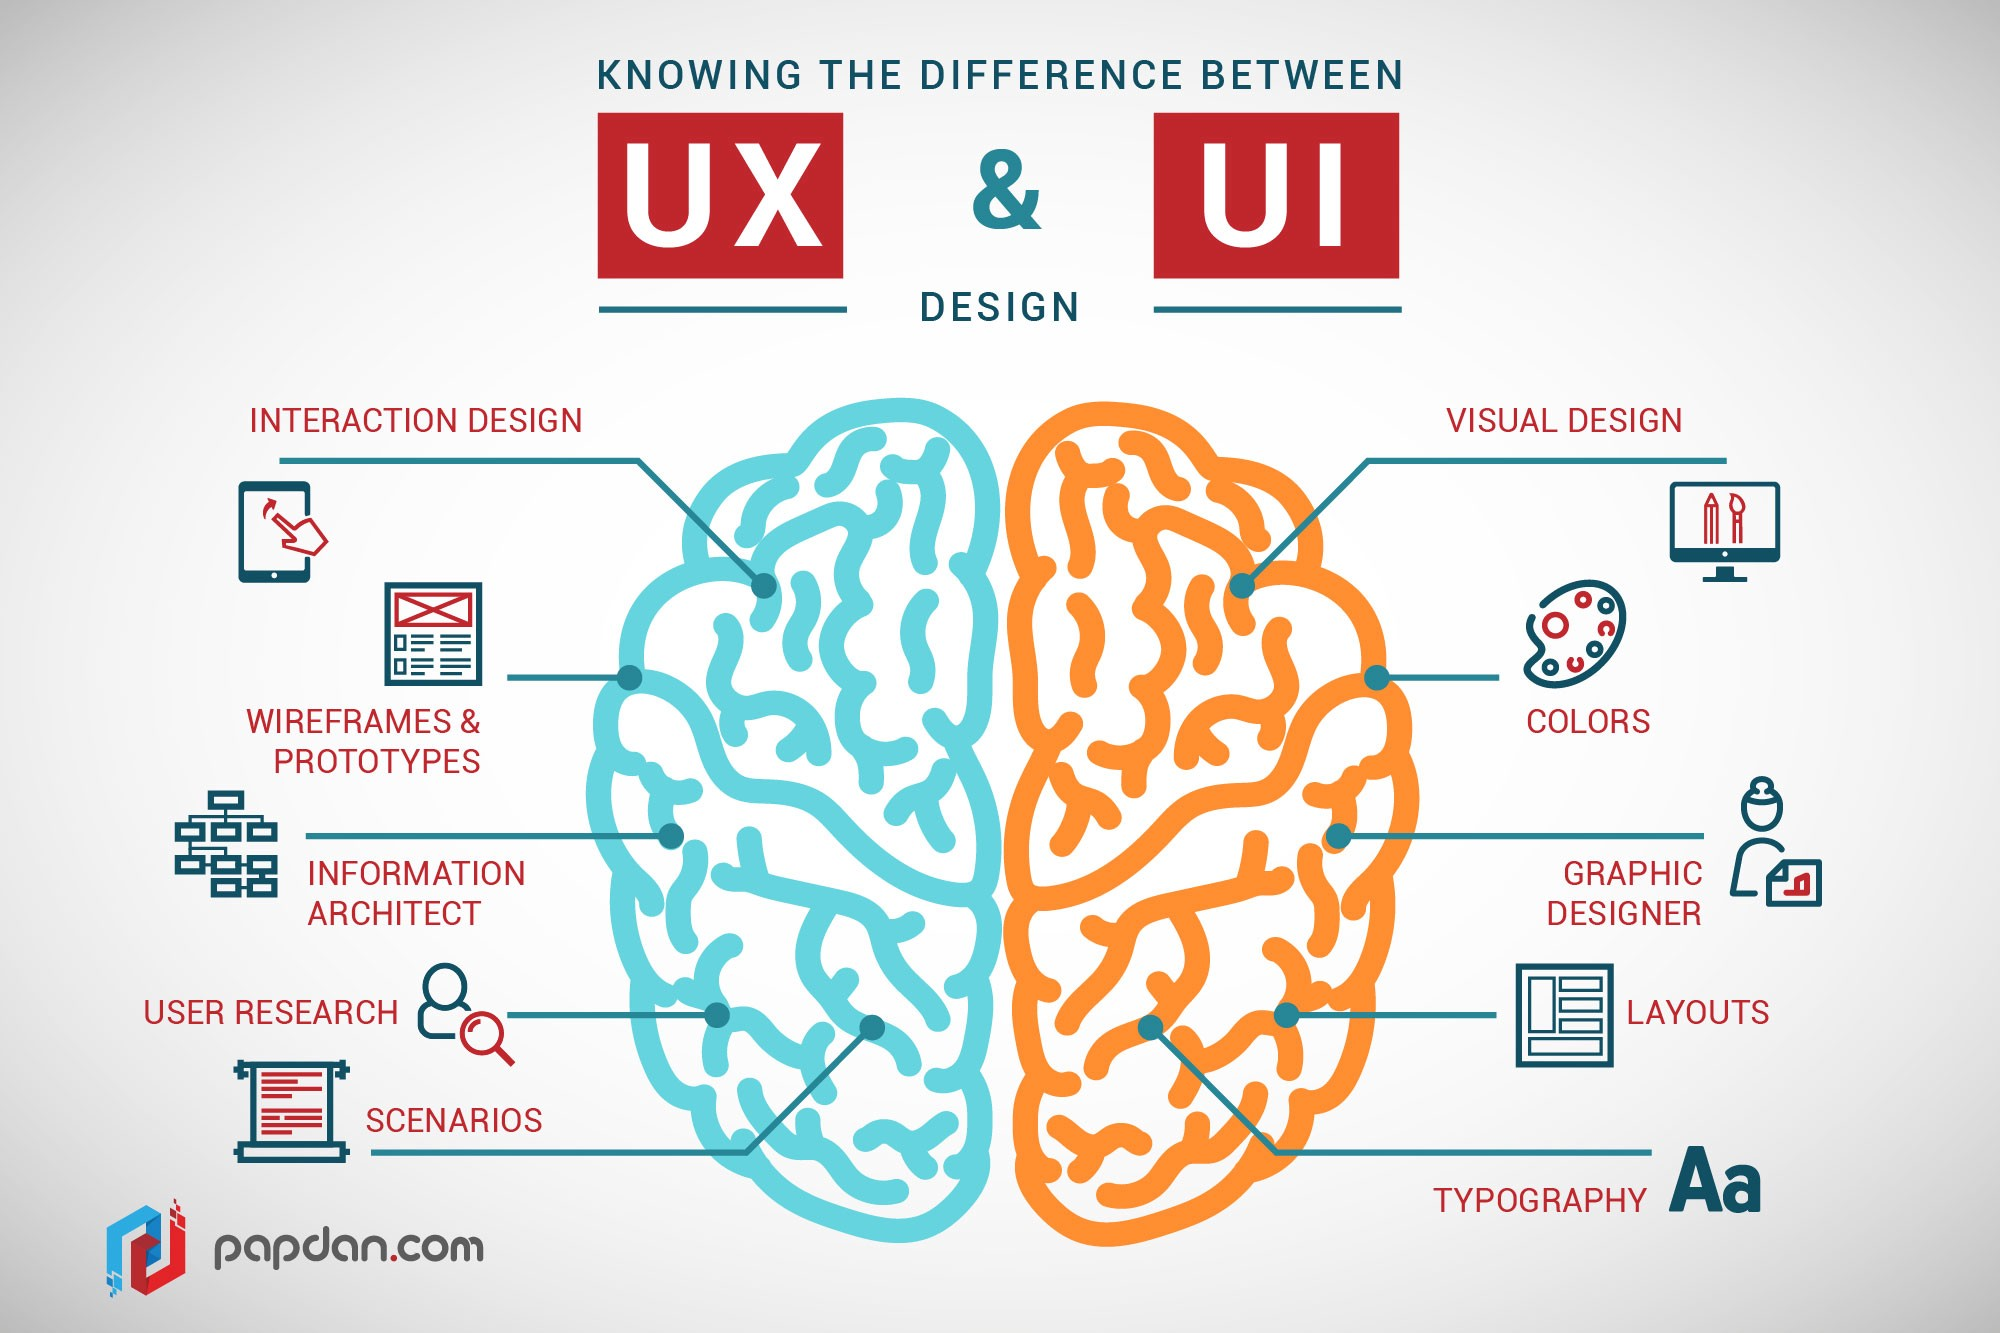 What's The Difference Between Ux And Ui Design